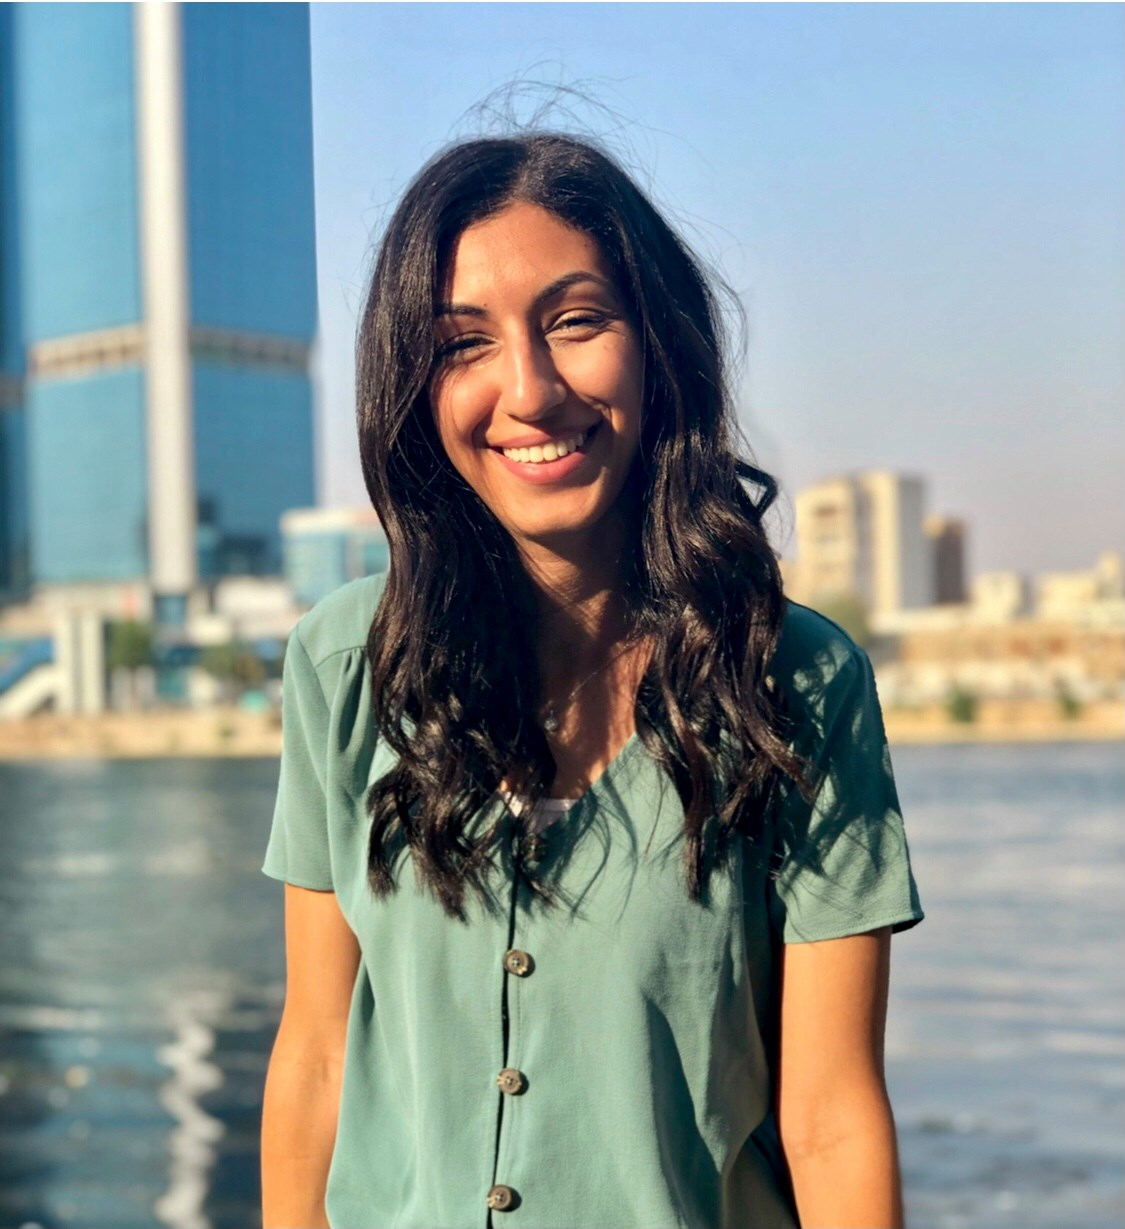 A woman in a green shirt smiling